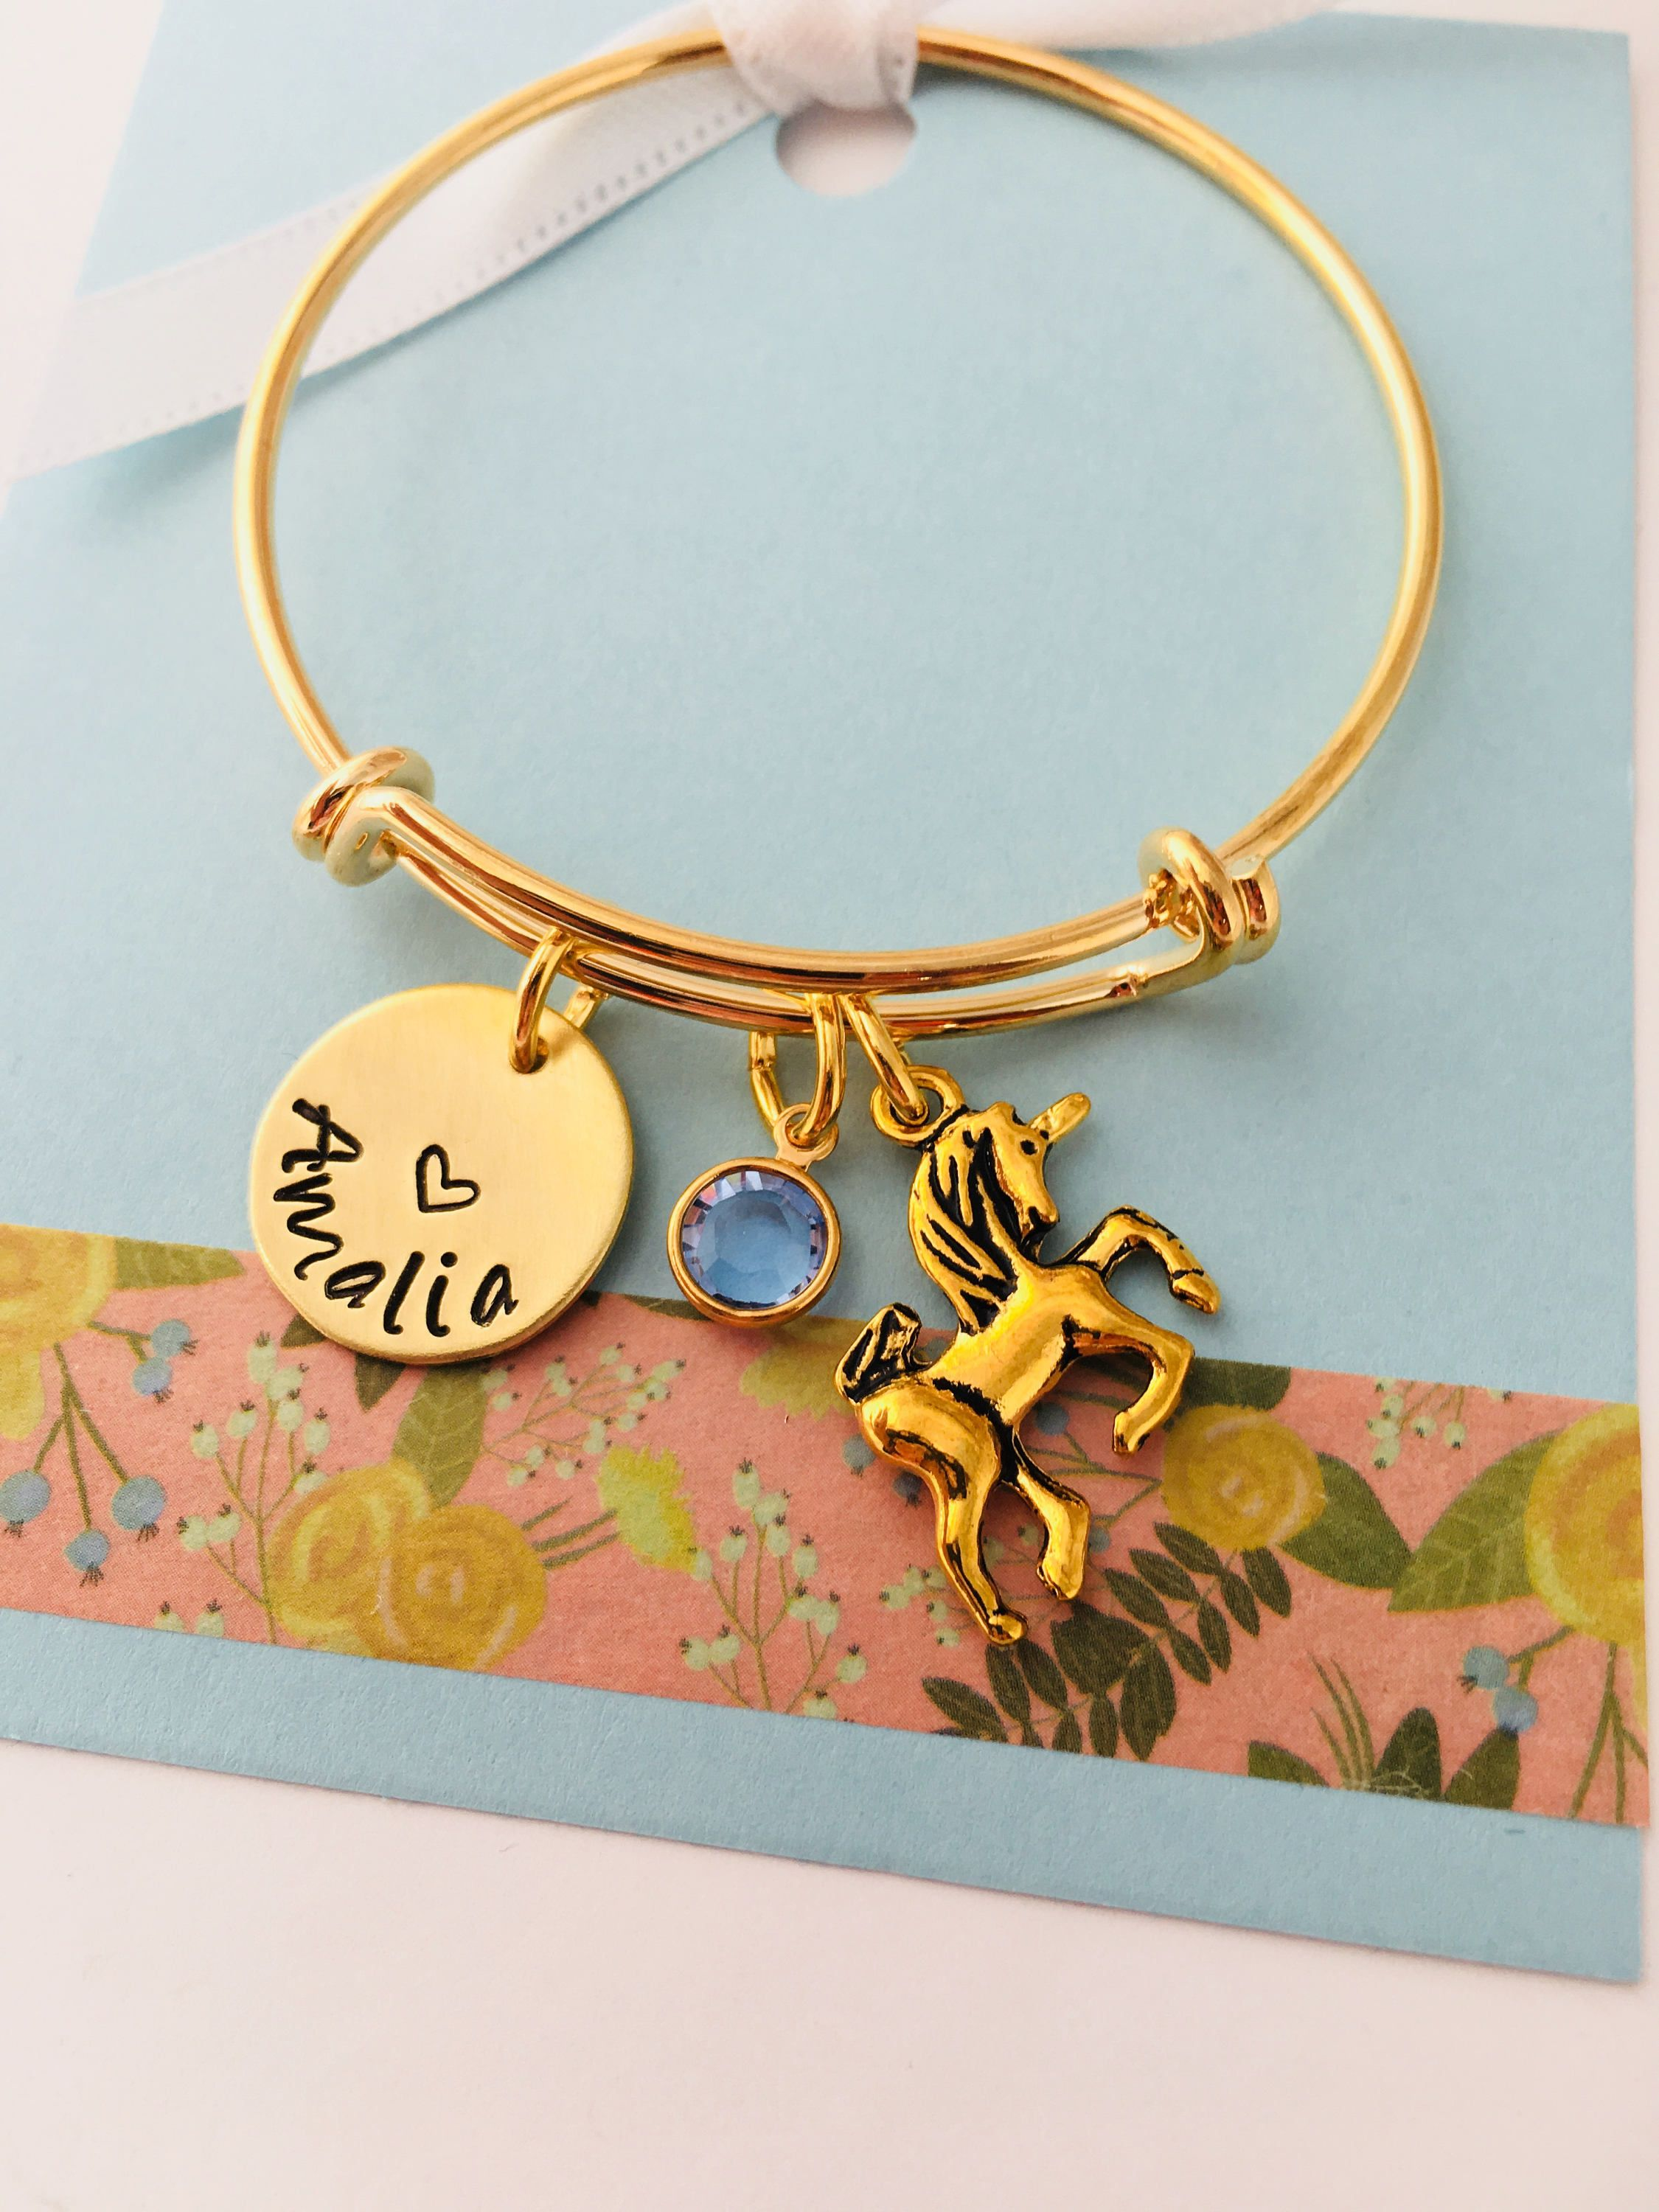 Congratulate, what Young teen jewelry confirm